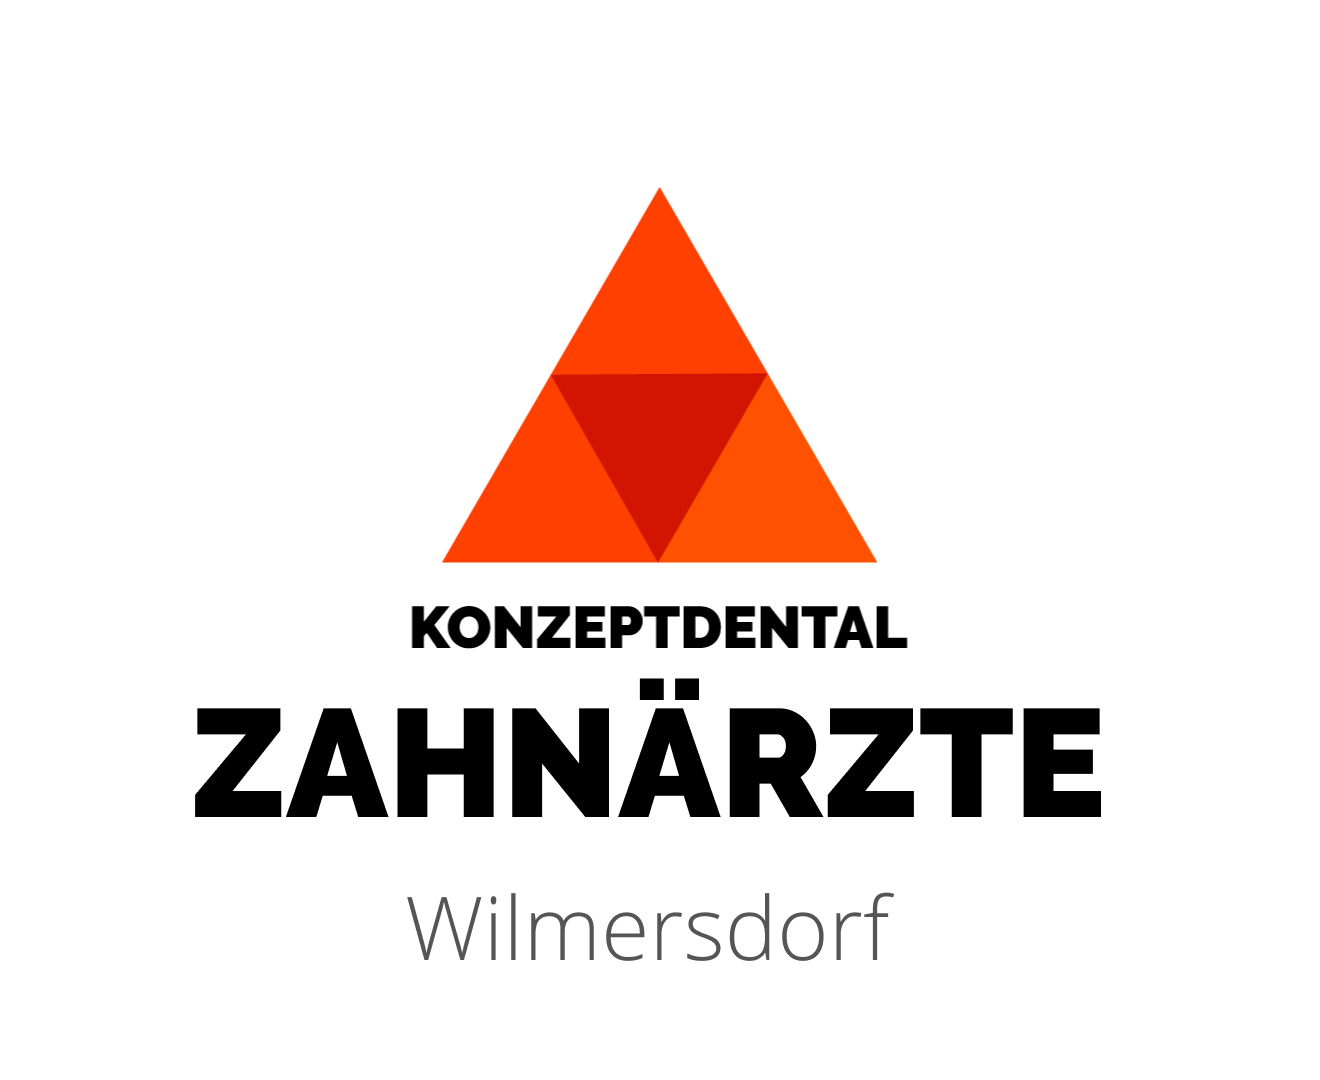 logo wilmersdorf center